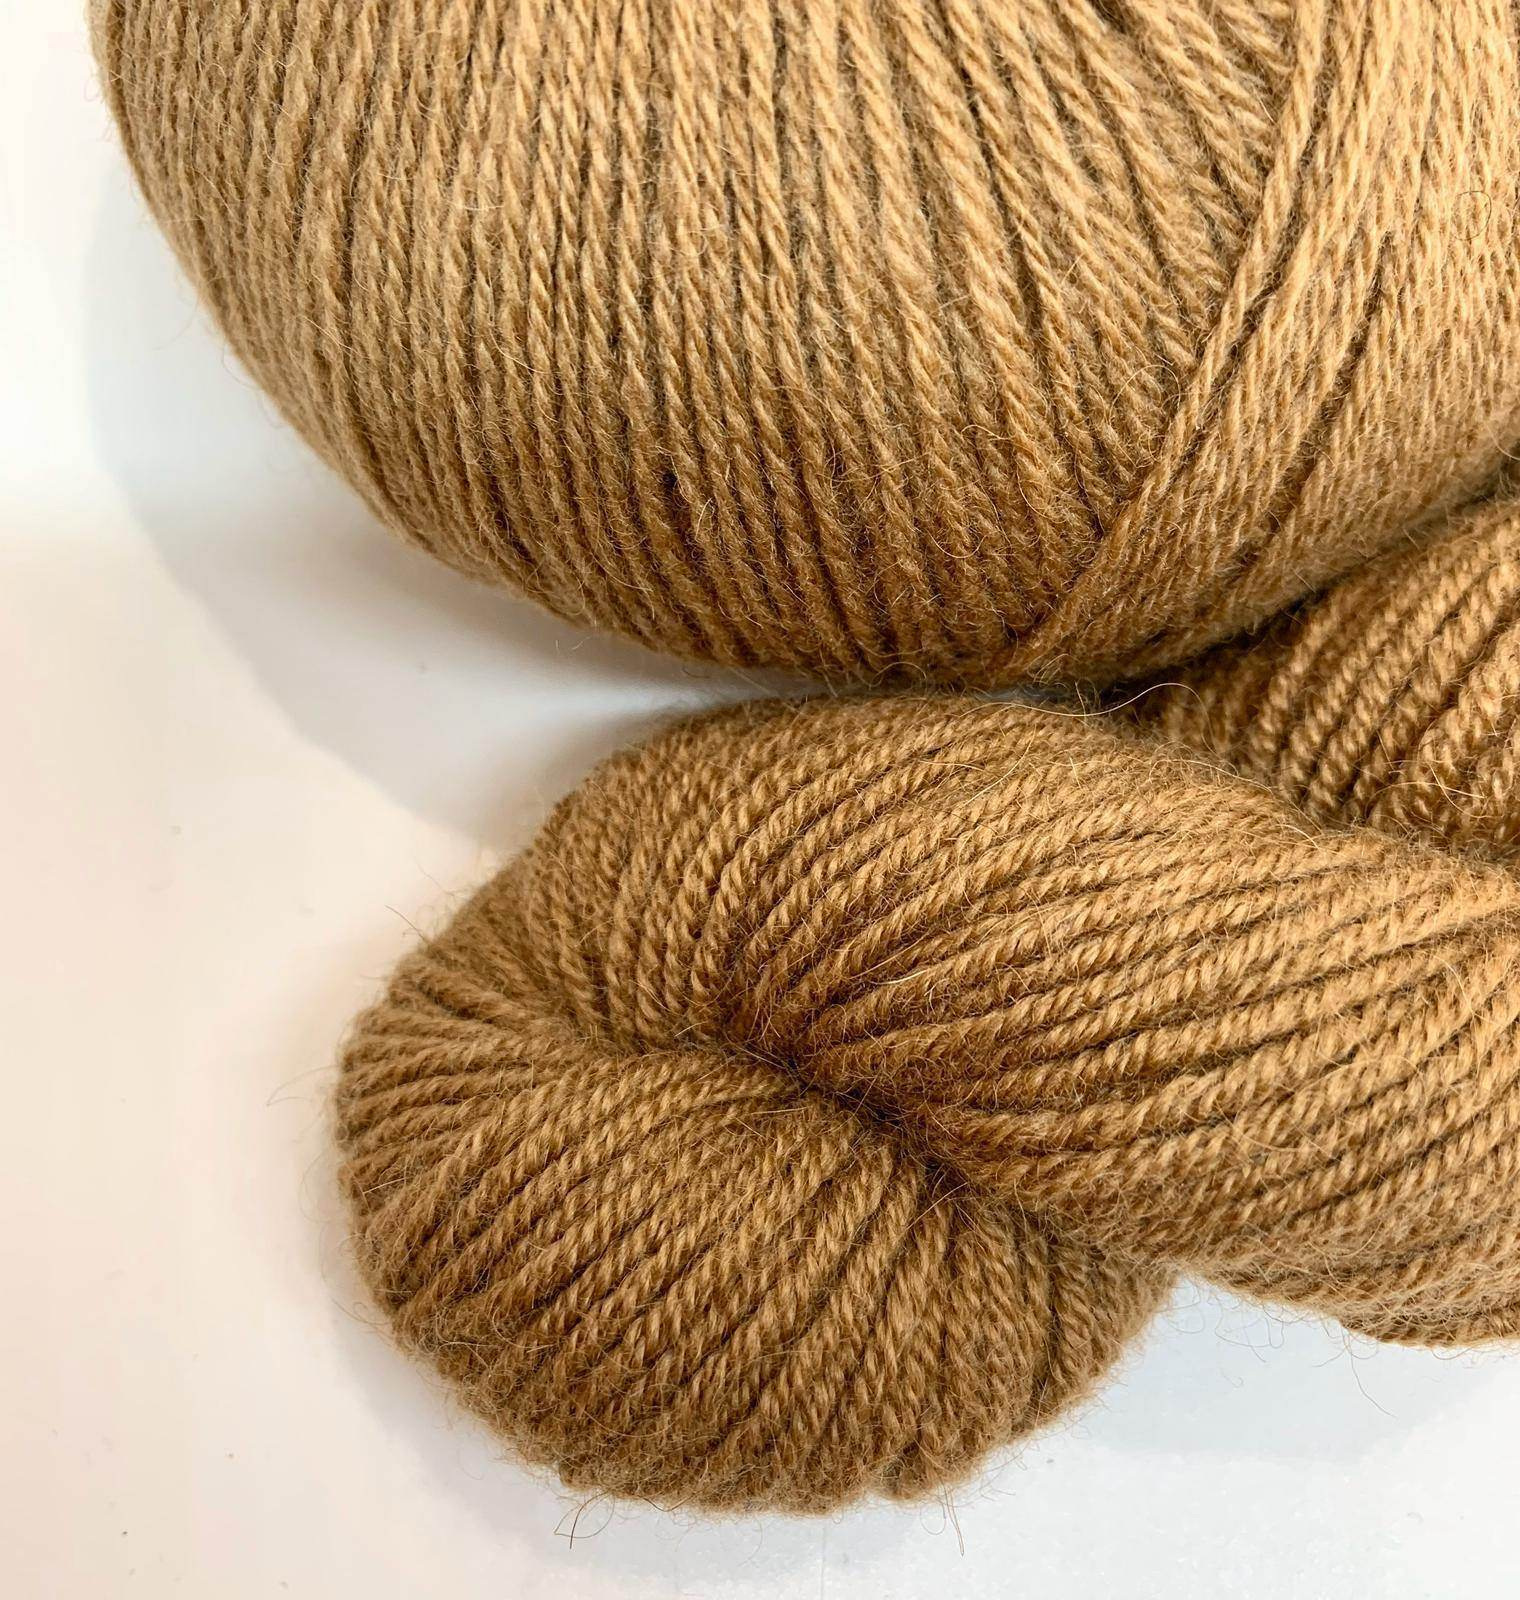 10 Pack of Baby Camel - Nordic Yarn